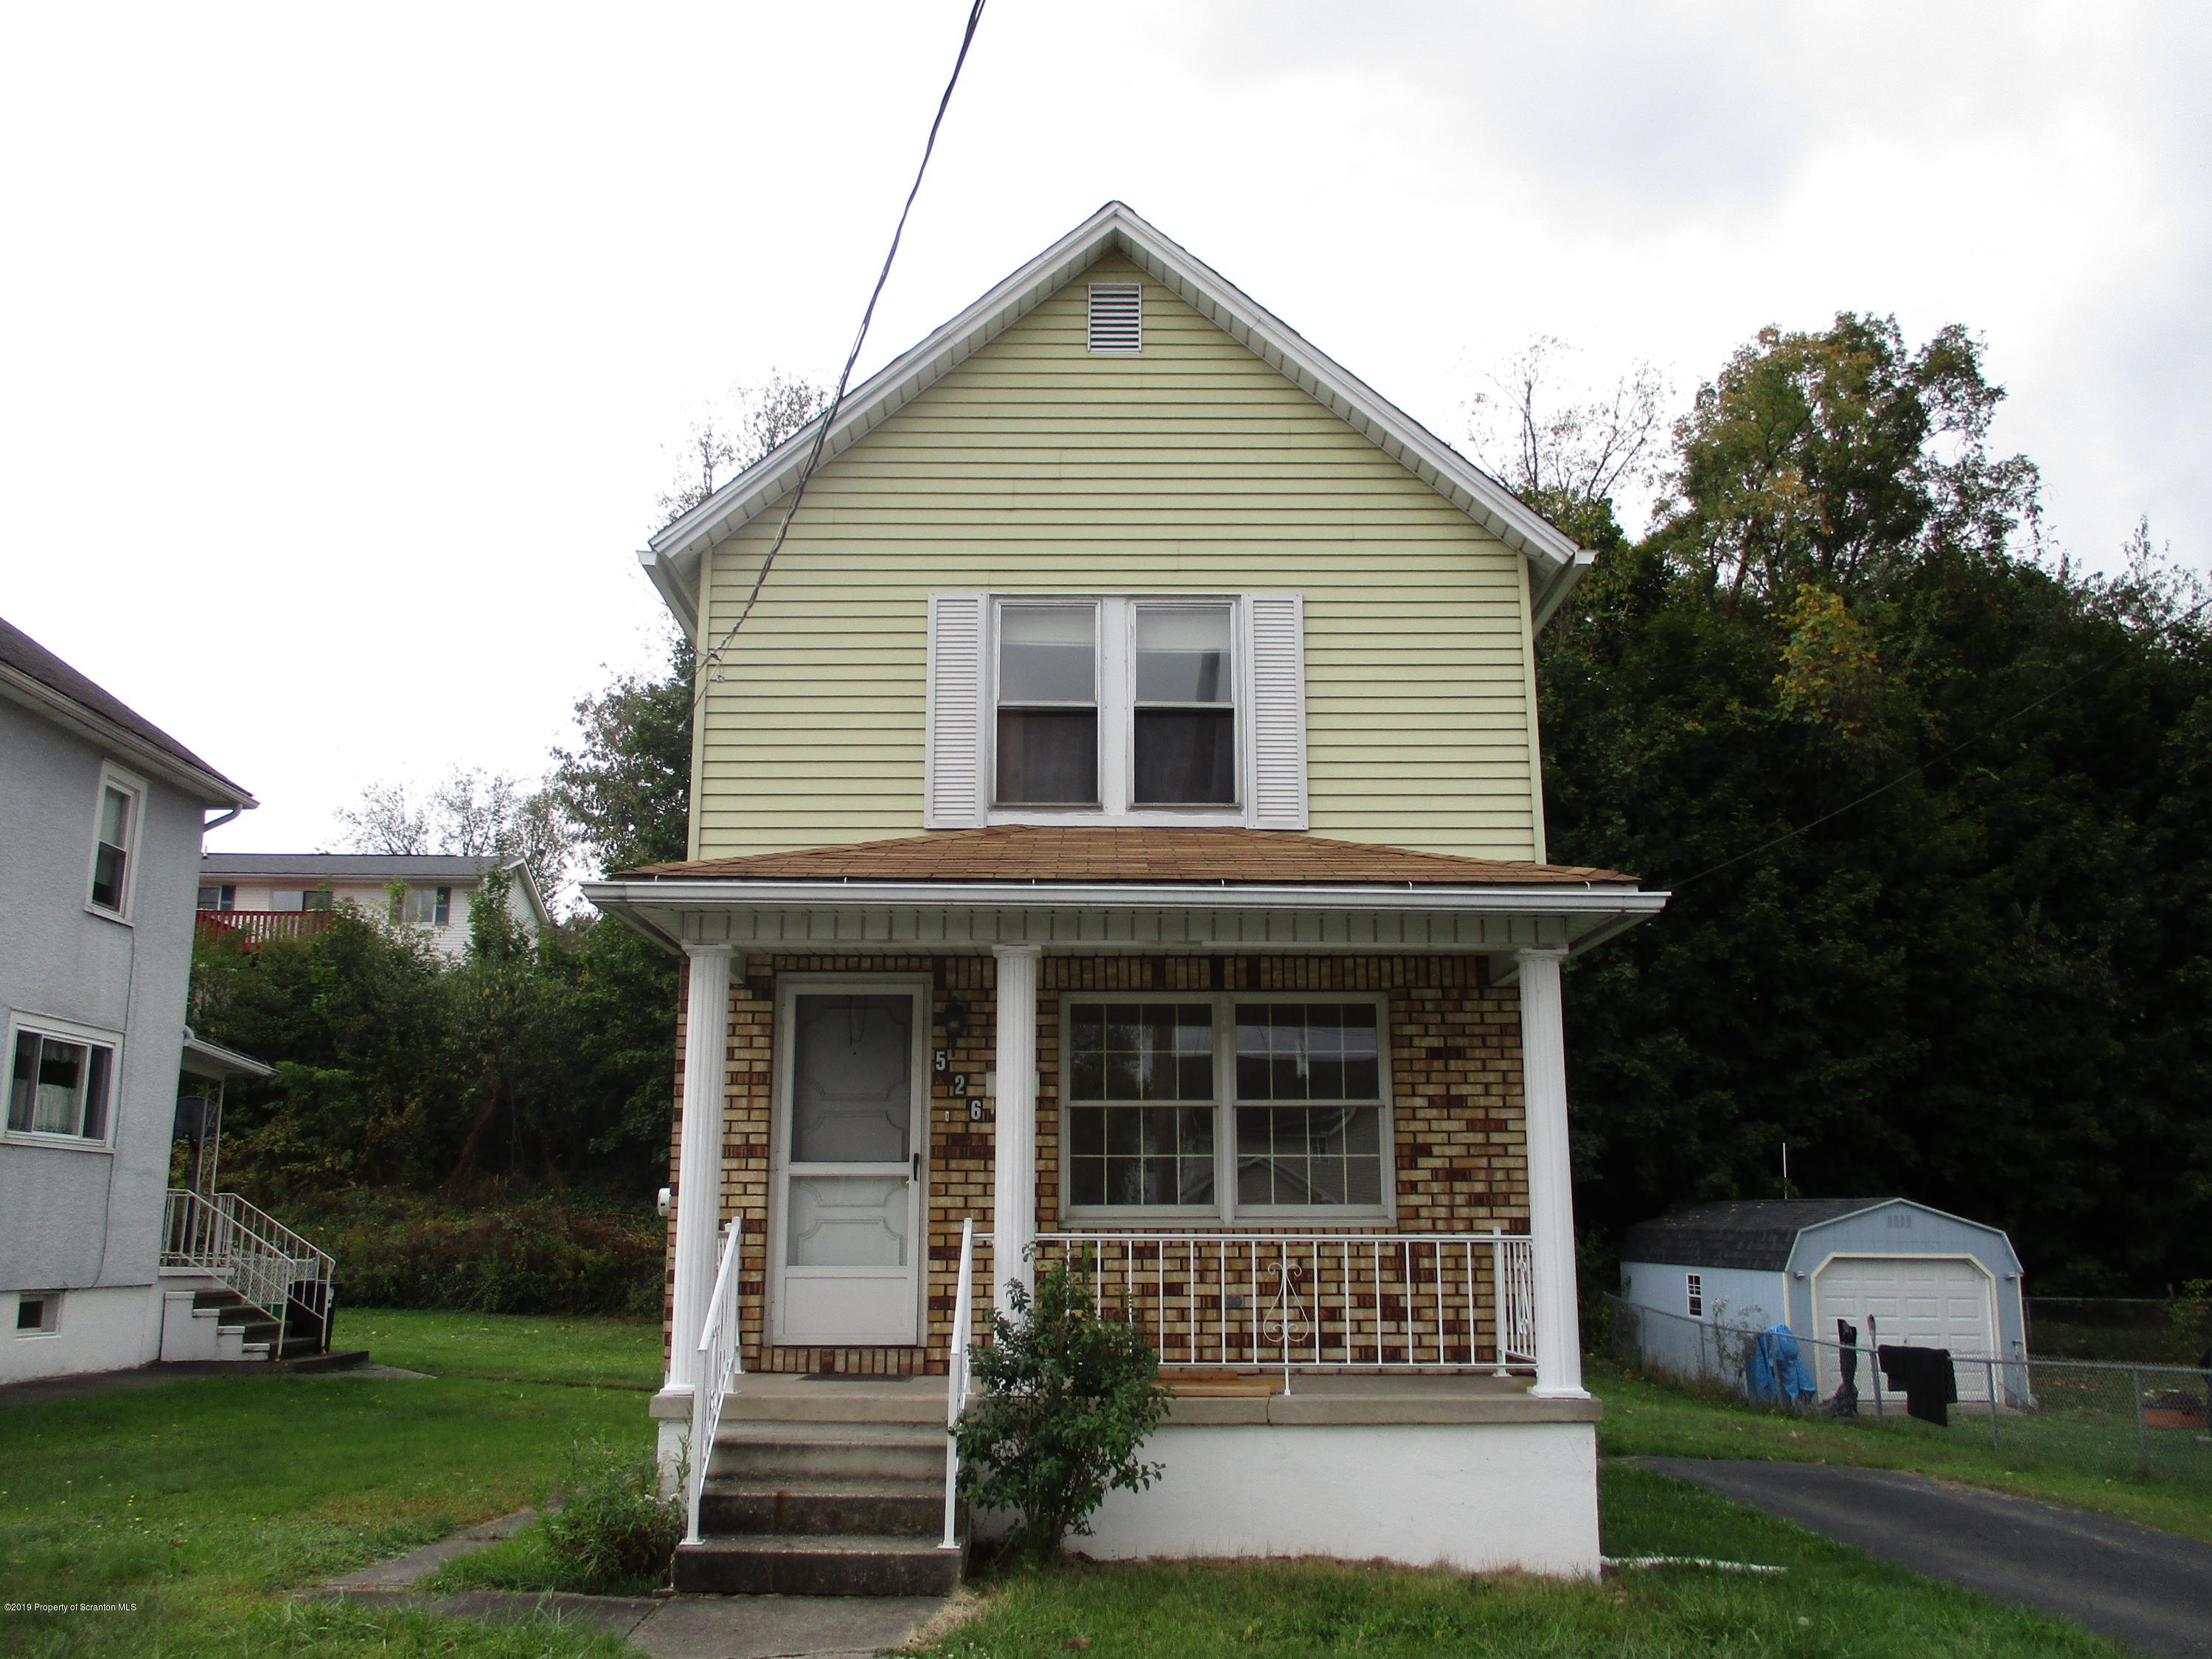 526 Gaughan Ct, Archbald, Pennsylvania 18403, 3 Bedrooms Bedrooms, 5 Rooms Rooms,1 BathroomBathrooms,Single Family,For Sale,Gaughan,19-4974